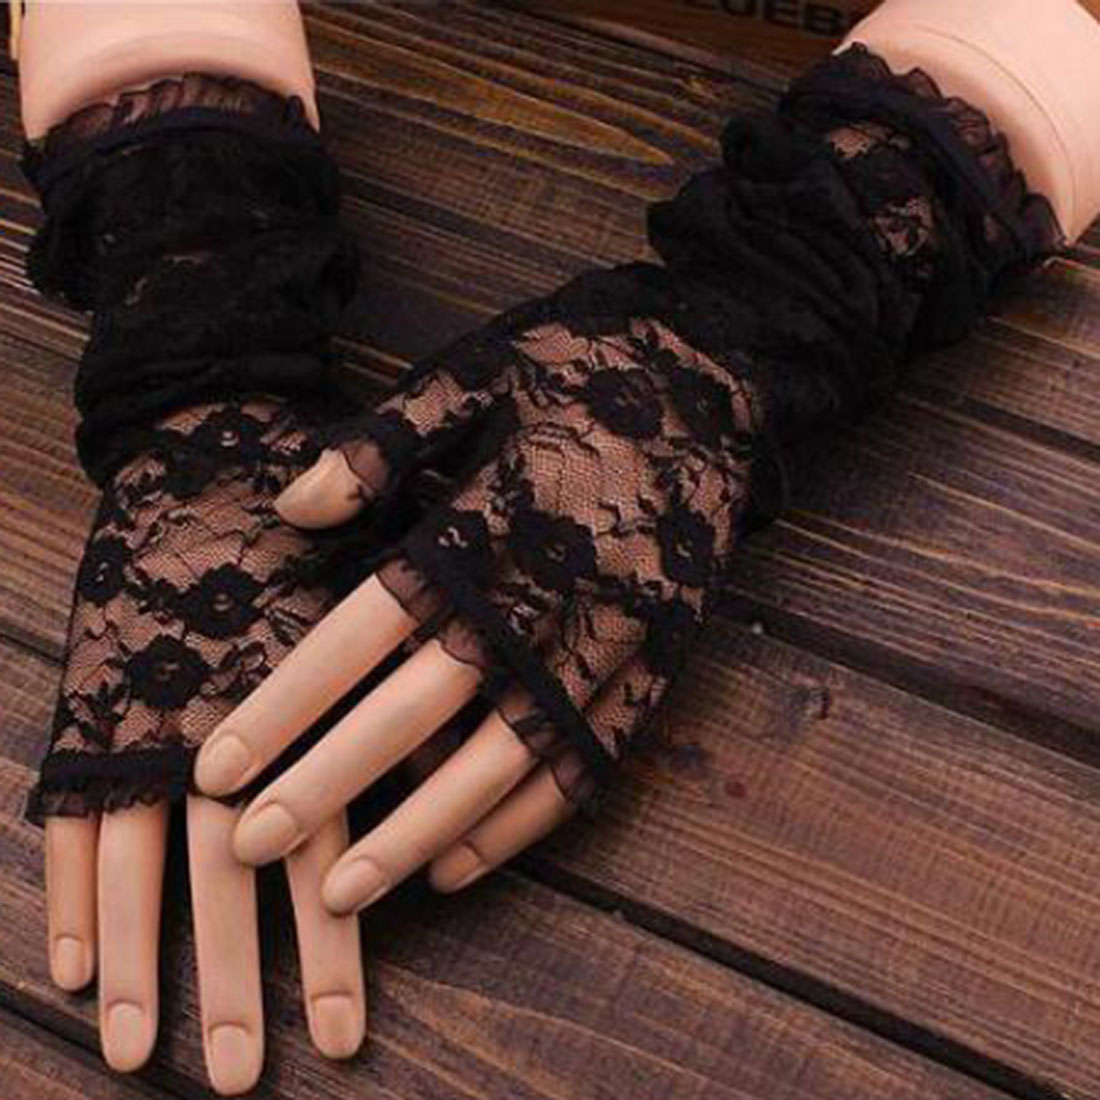 Fingerless gloves for sun protection - New Hot Long Lace Hollow Out Fingerless Gloves Skid Resistance Pattern Lace Fingerless Gloves Sun